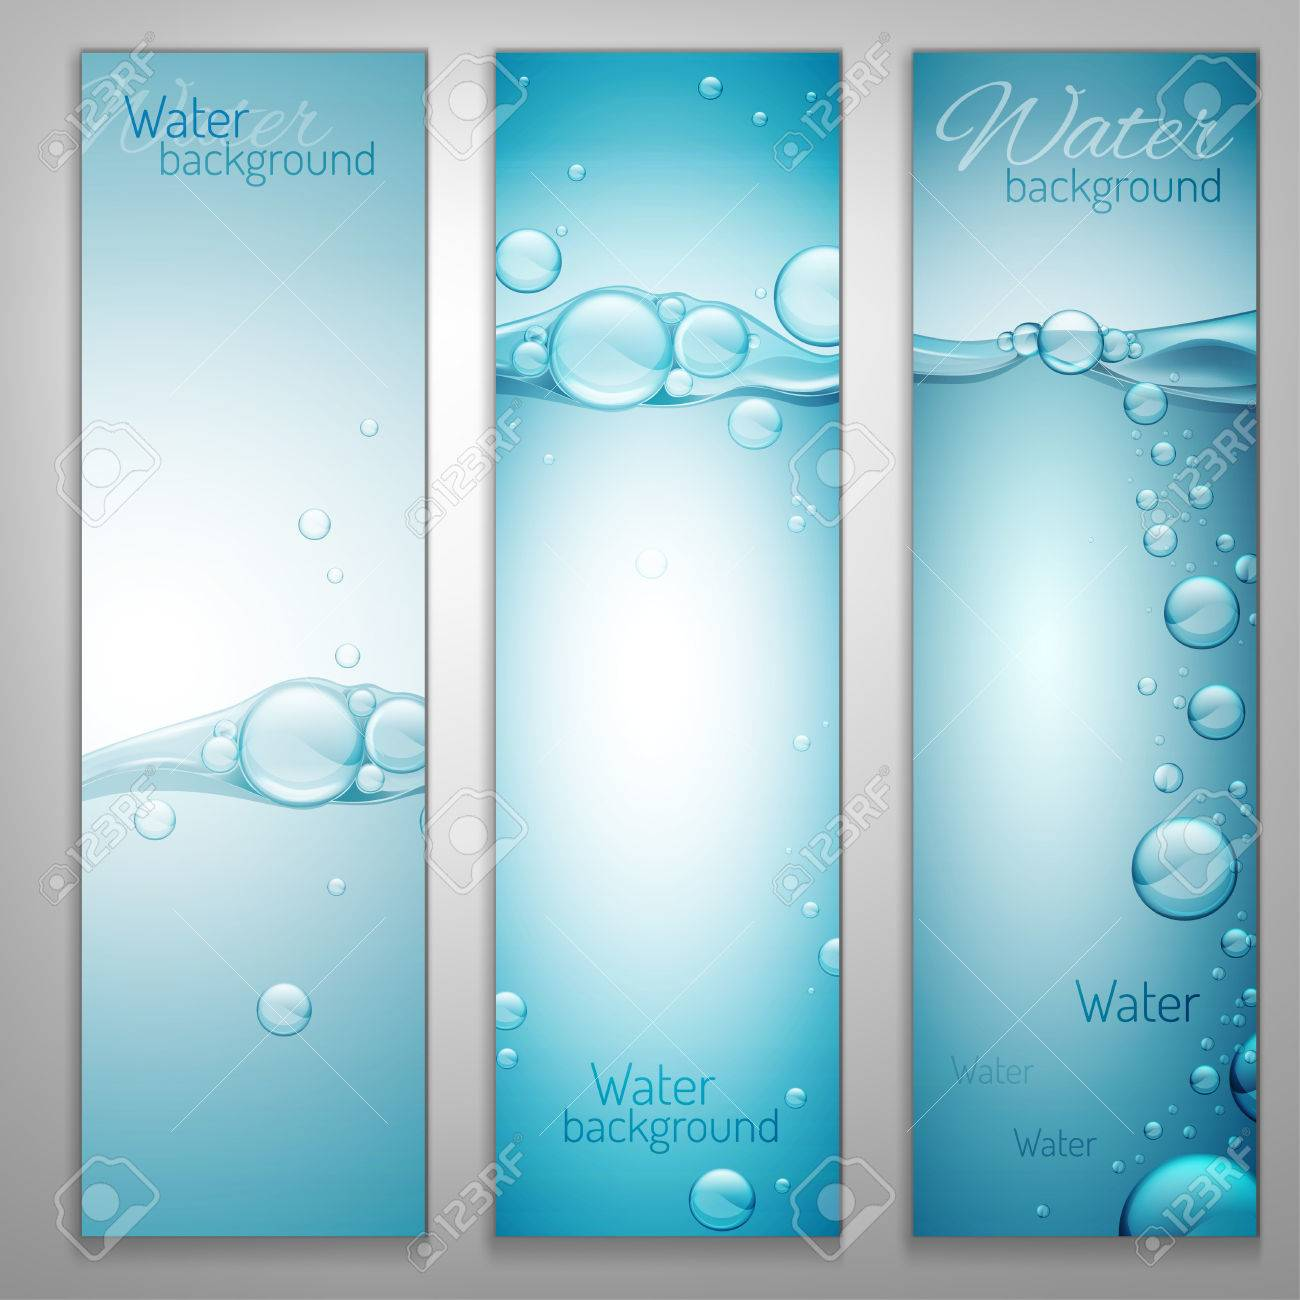 Perfect Transparent Water Wave Image With Bubbles. Vector Illustration In Light Blue  Colours. Purity And Good Looking